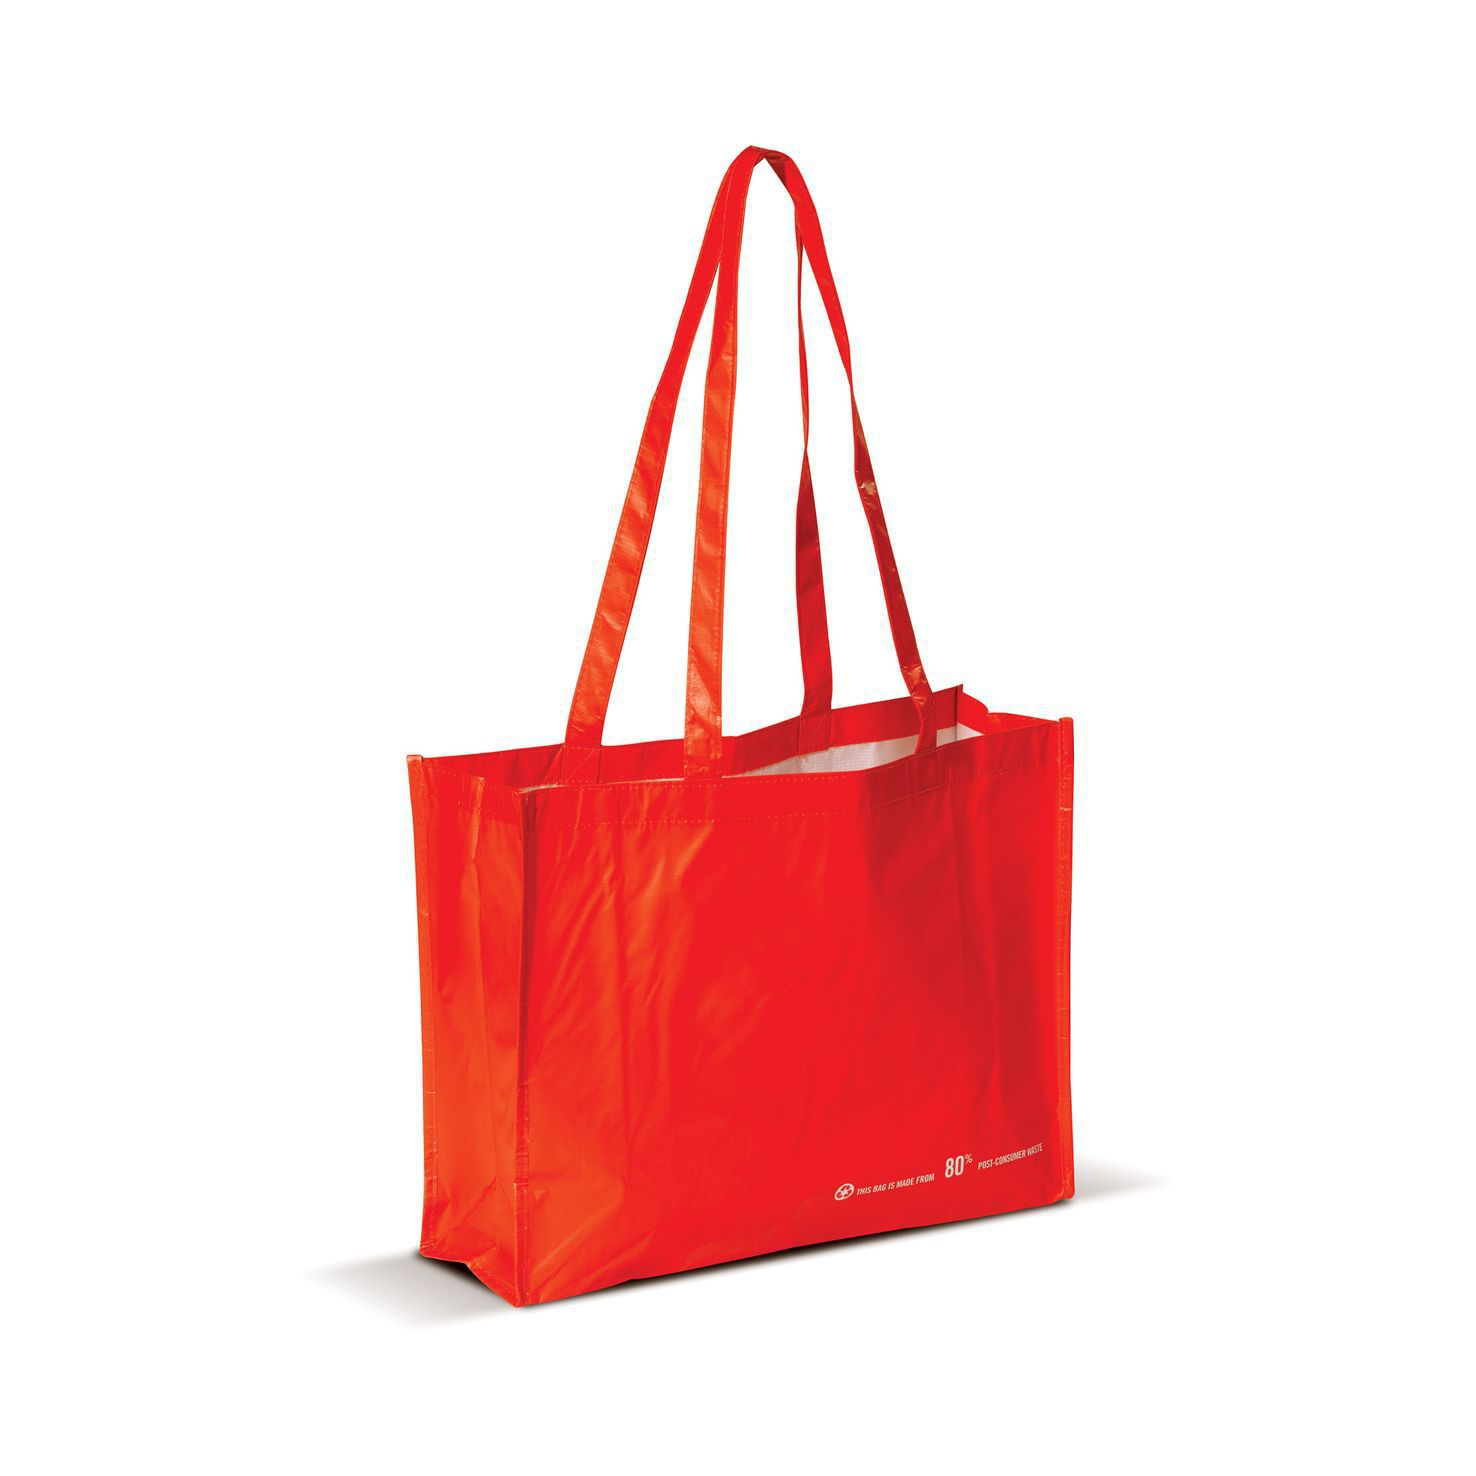 Rode Shopper | Gerecycled PET